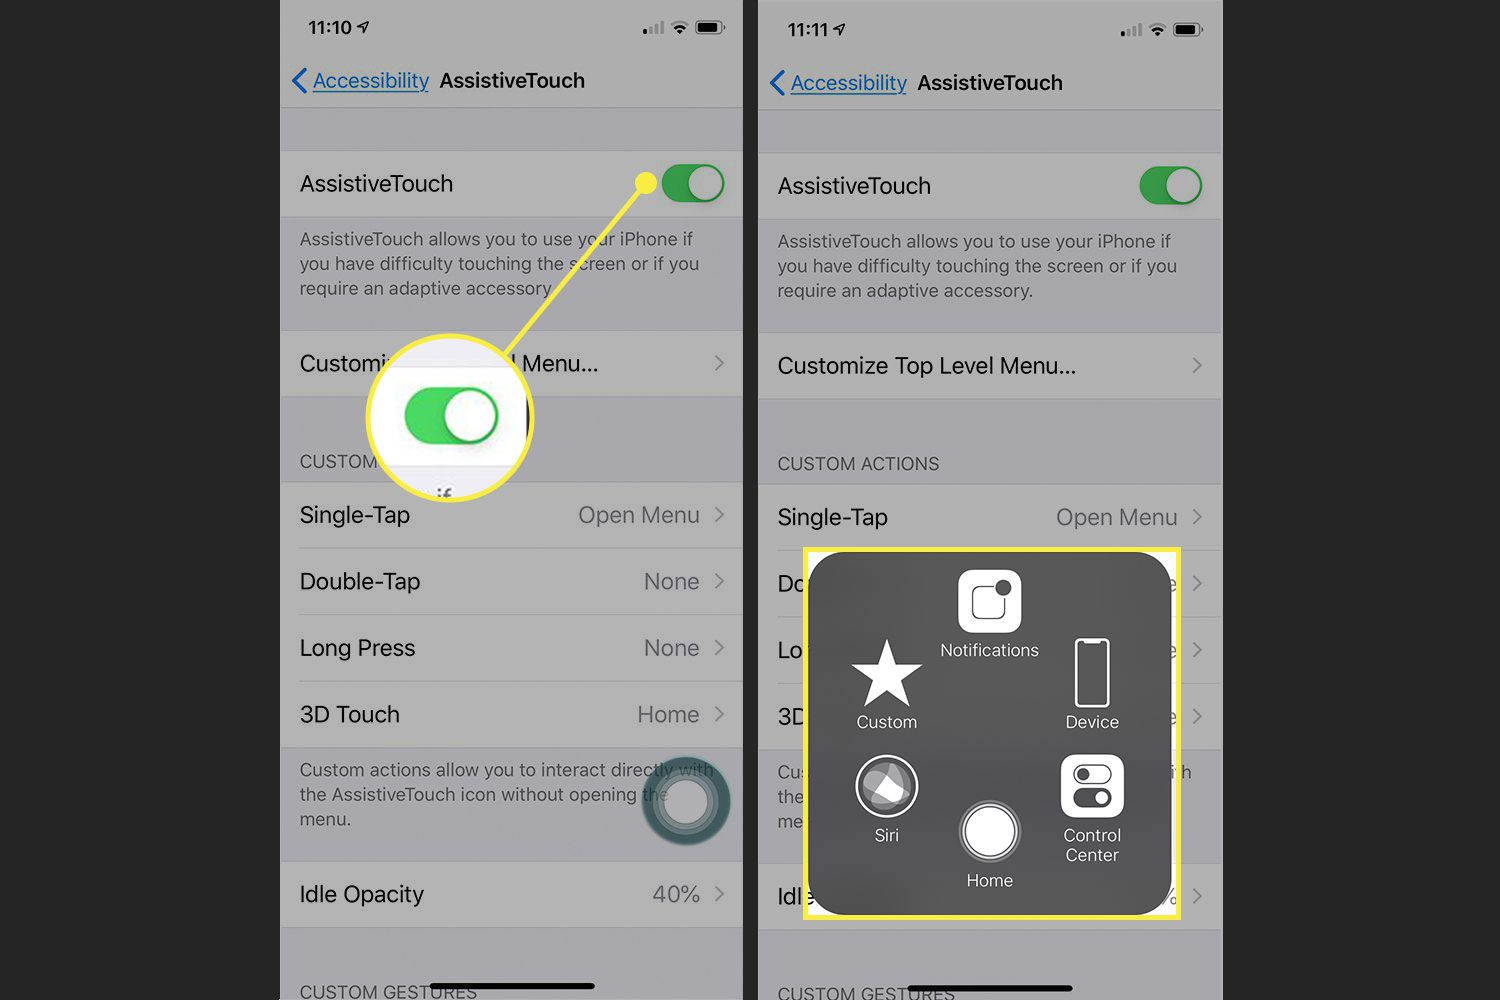 Screenshots of an iPhone's settings with the AssistiveTouch switch and menu highlighted